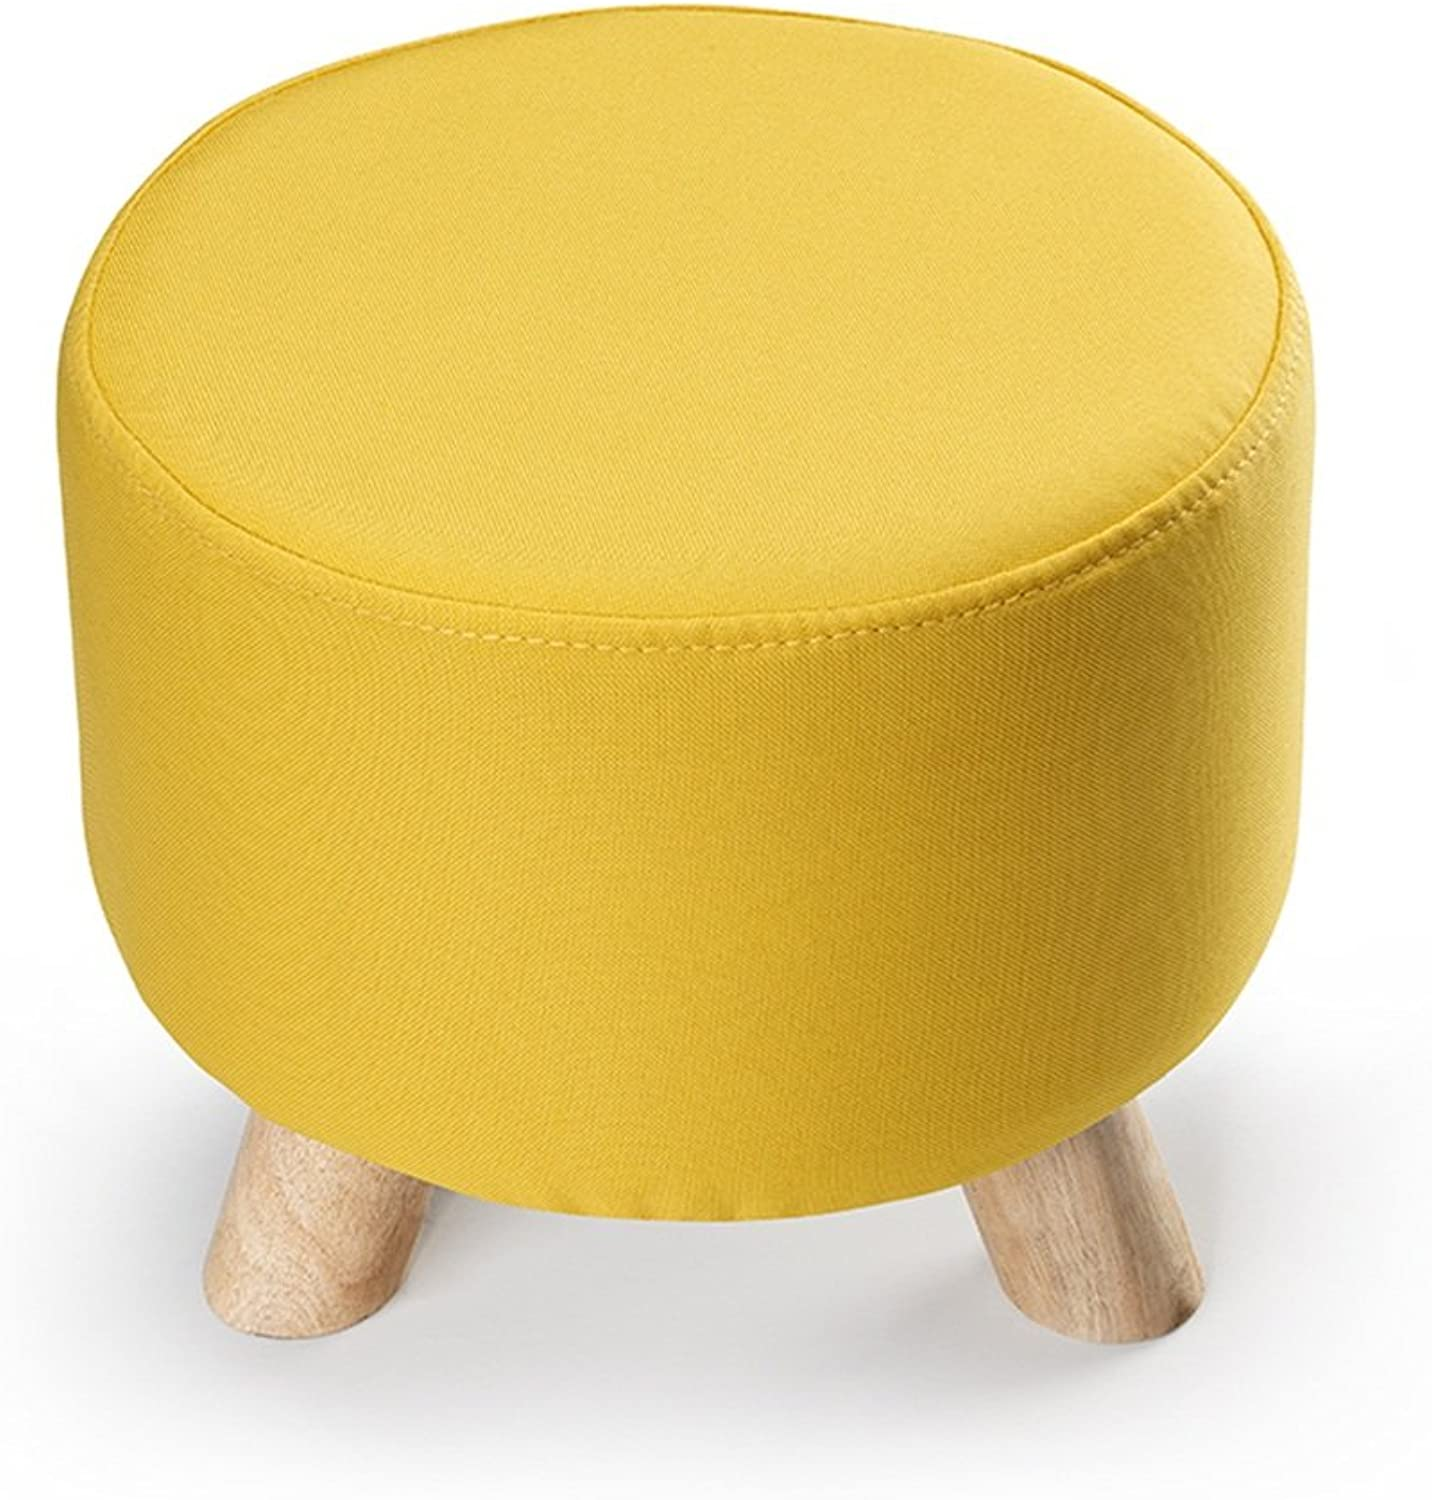 Small stool Removable and Washable shoes stool European-Style Fabric Sofa stool shoes stool Solid Wood Sits (color   Yellow, Size   30  28cm)